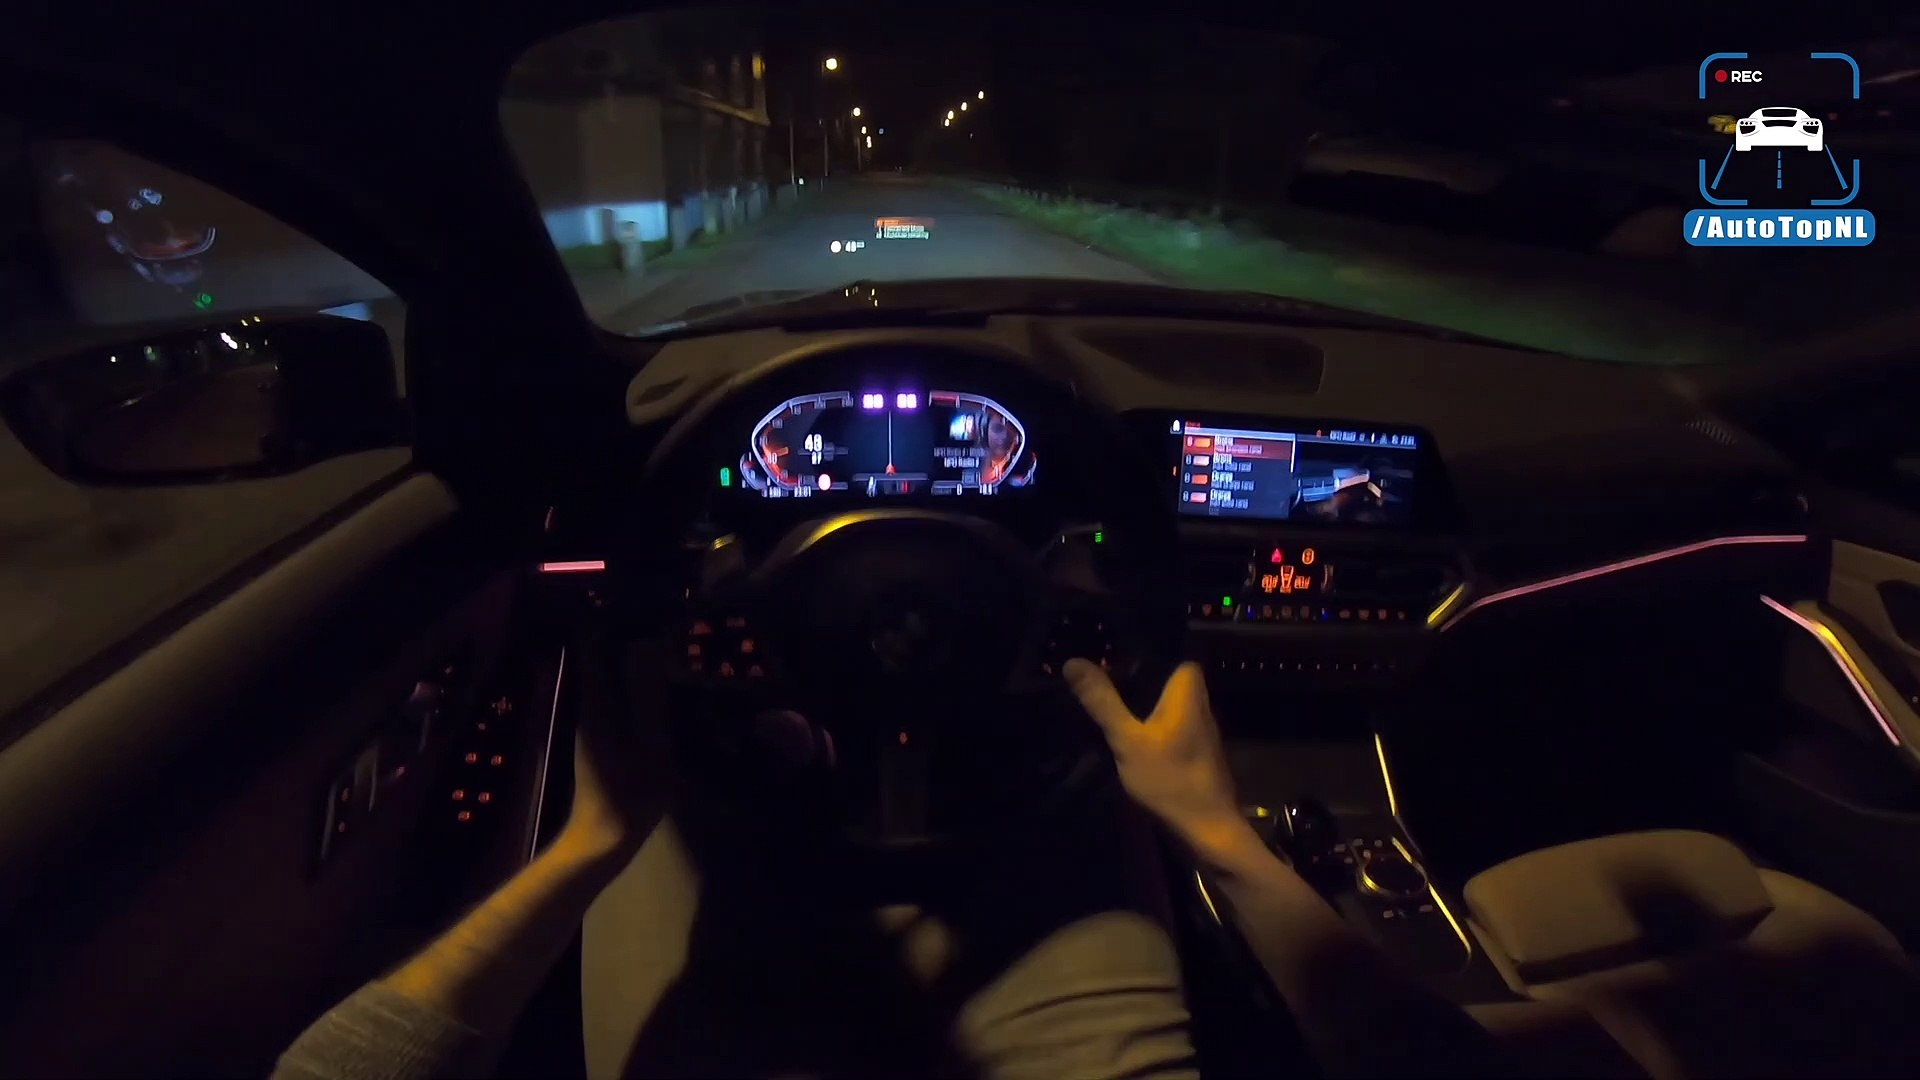 New Bmw 3 Series G20 Night Drive W Ambient Lighting By Autotopnl Dailymotion Video